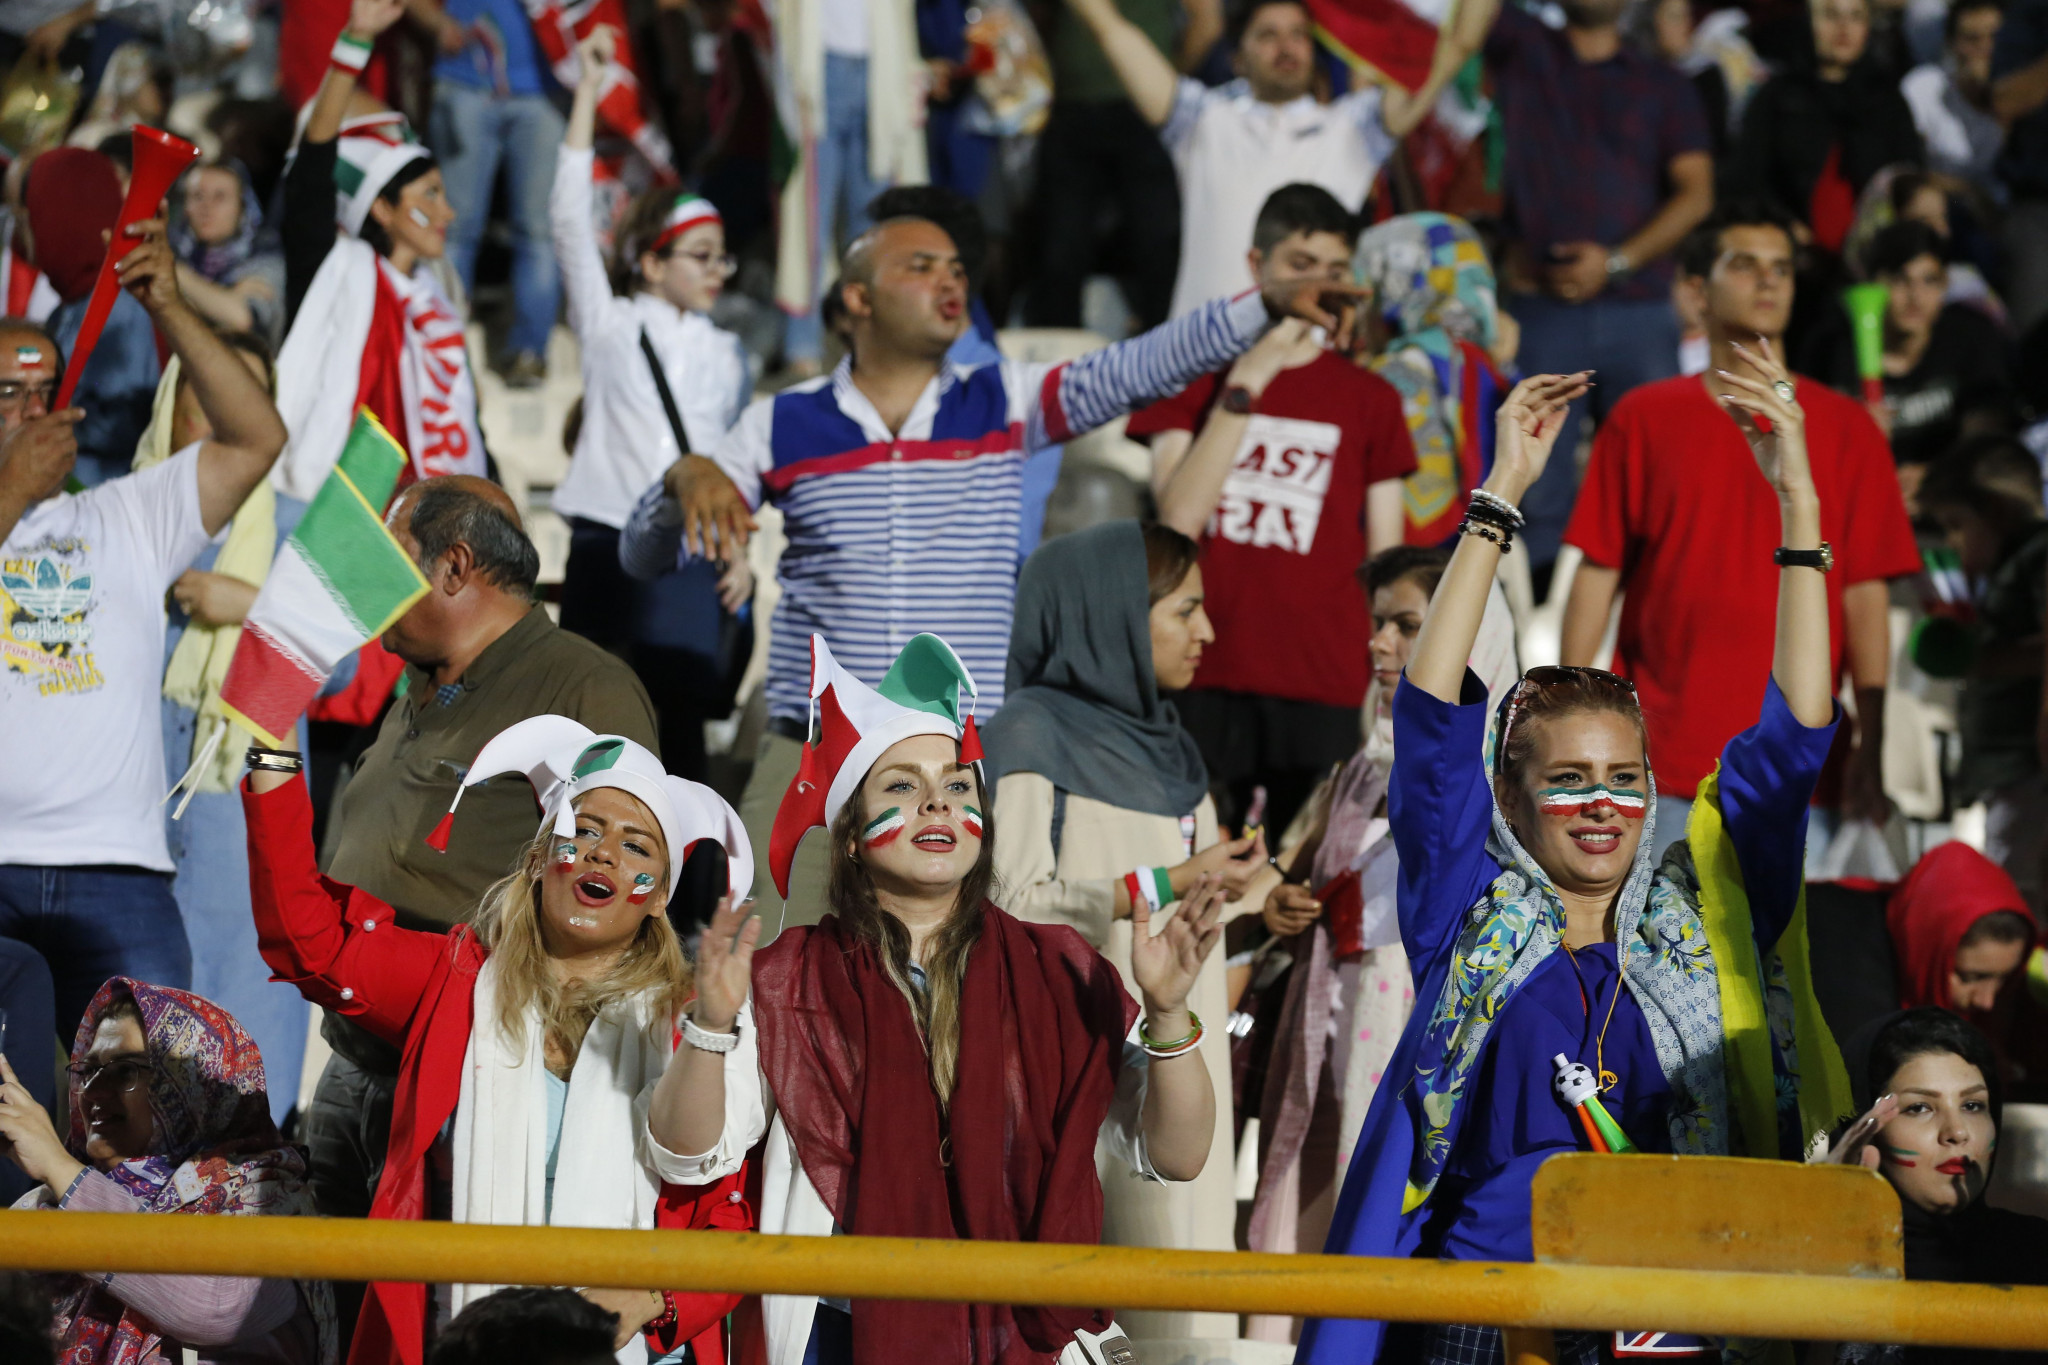 There are growing calls for the ban on women attending men's football in Iran to be lifted, after women were allowed to attend screenings of the FIFA World Cup in Tehran's Azadi Stadium ©Getty Images